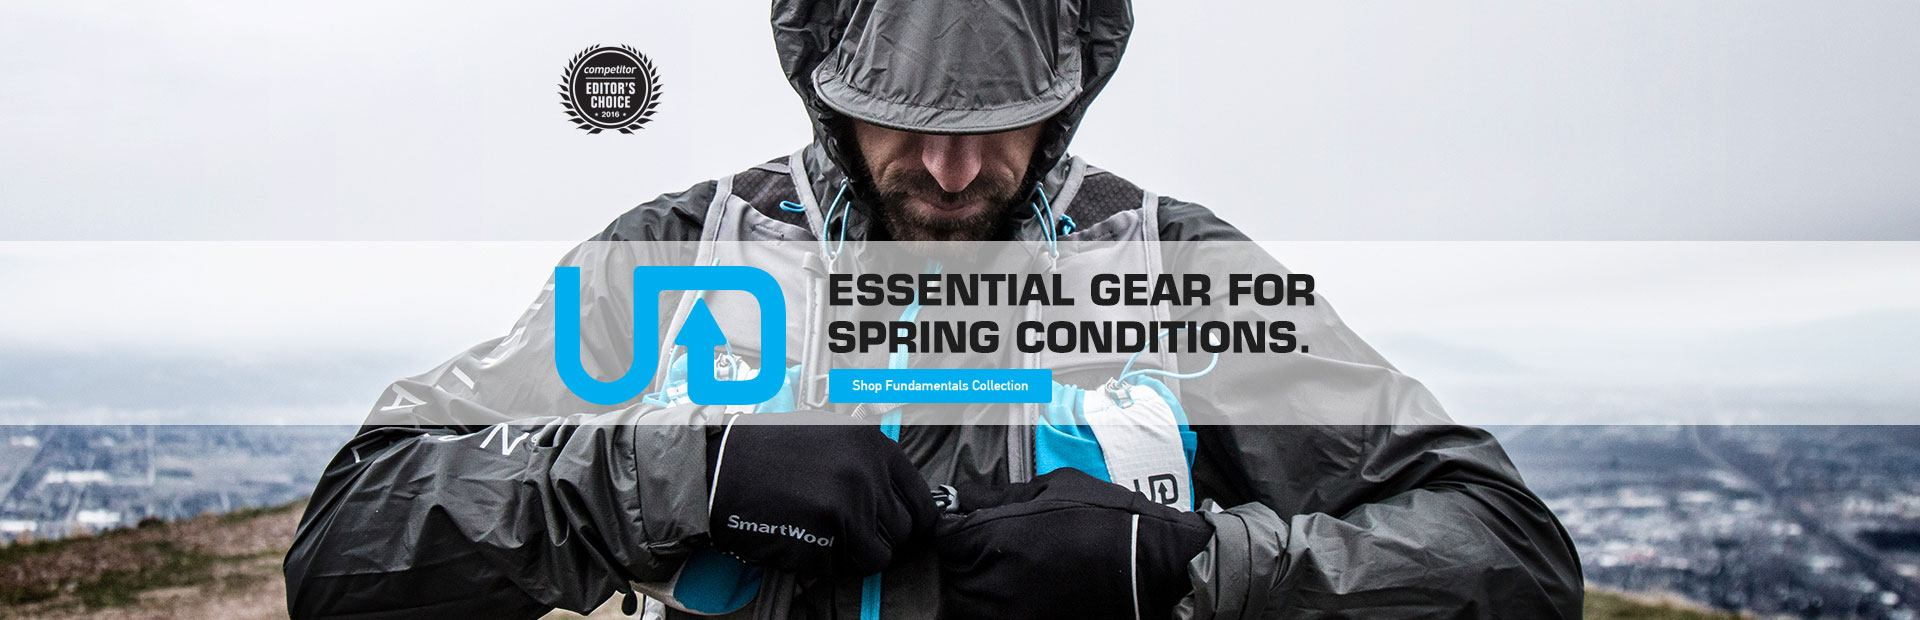 Essential Gear for Spring Conditions